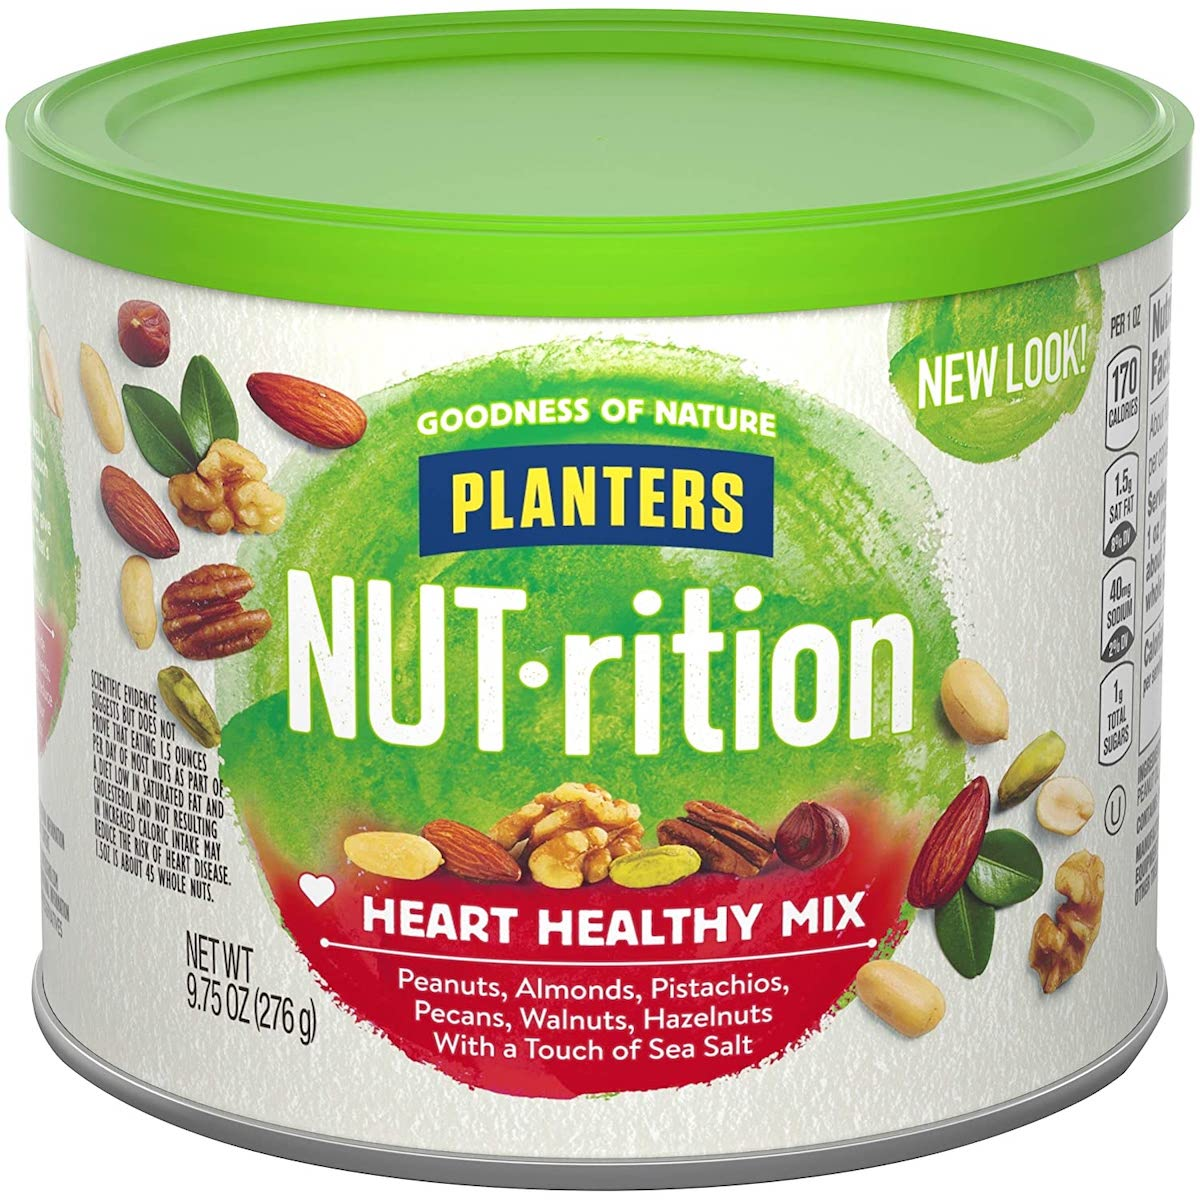 Planters NUTrition Heart Healthy Mix 276g